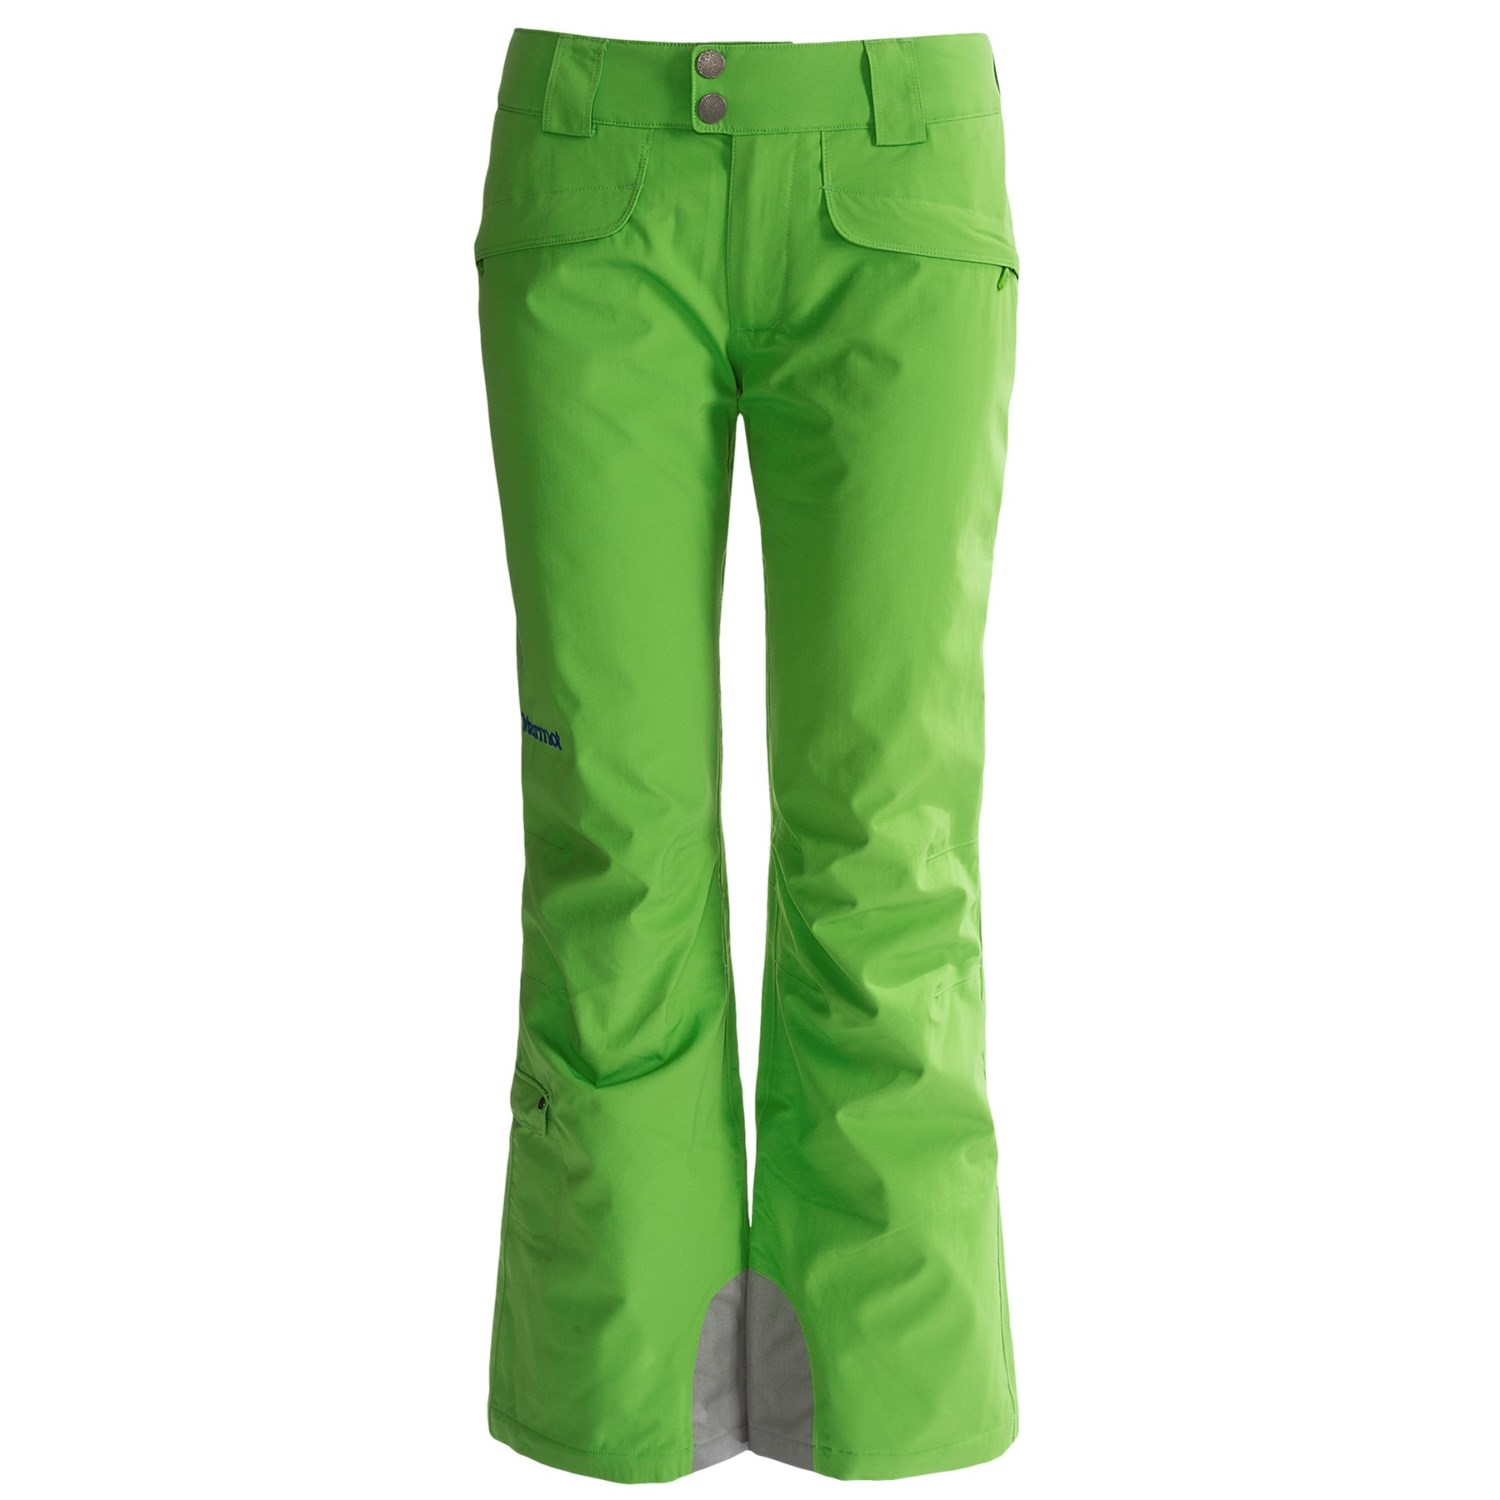 Shop Target for Green Pants you will love at great low prices. Spend $35+ or use your REDcard & get free 2-day shipping on most items or same-day pick-up in store.